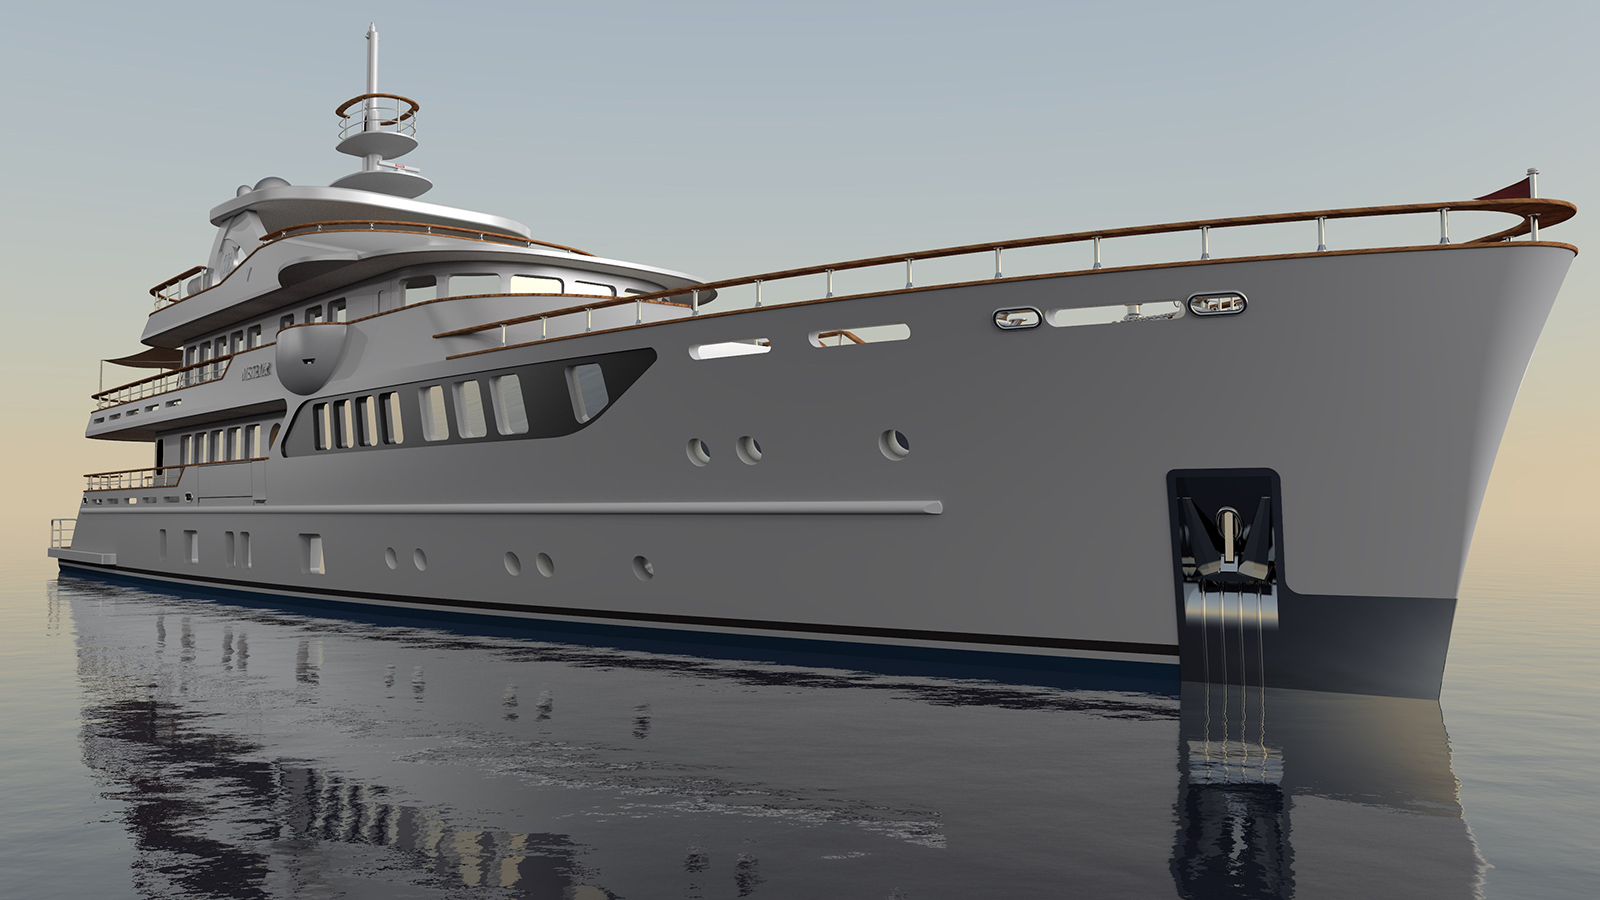 bow-view-of-project-meteor-by-mural-yachts